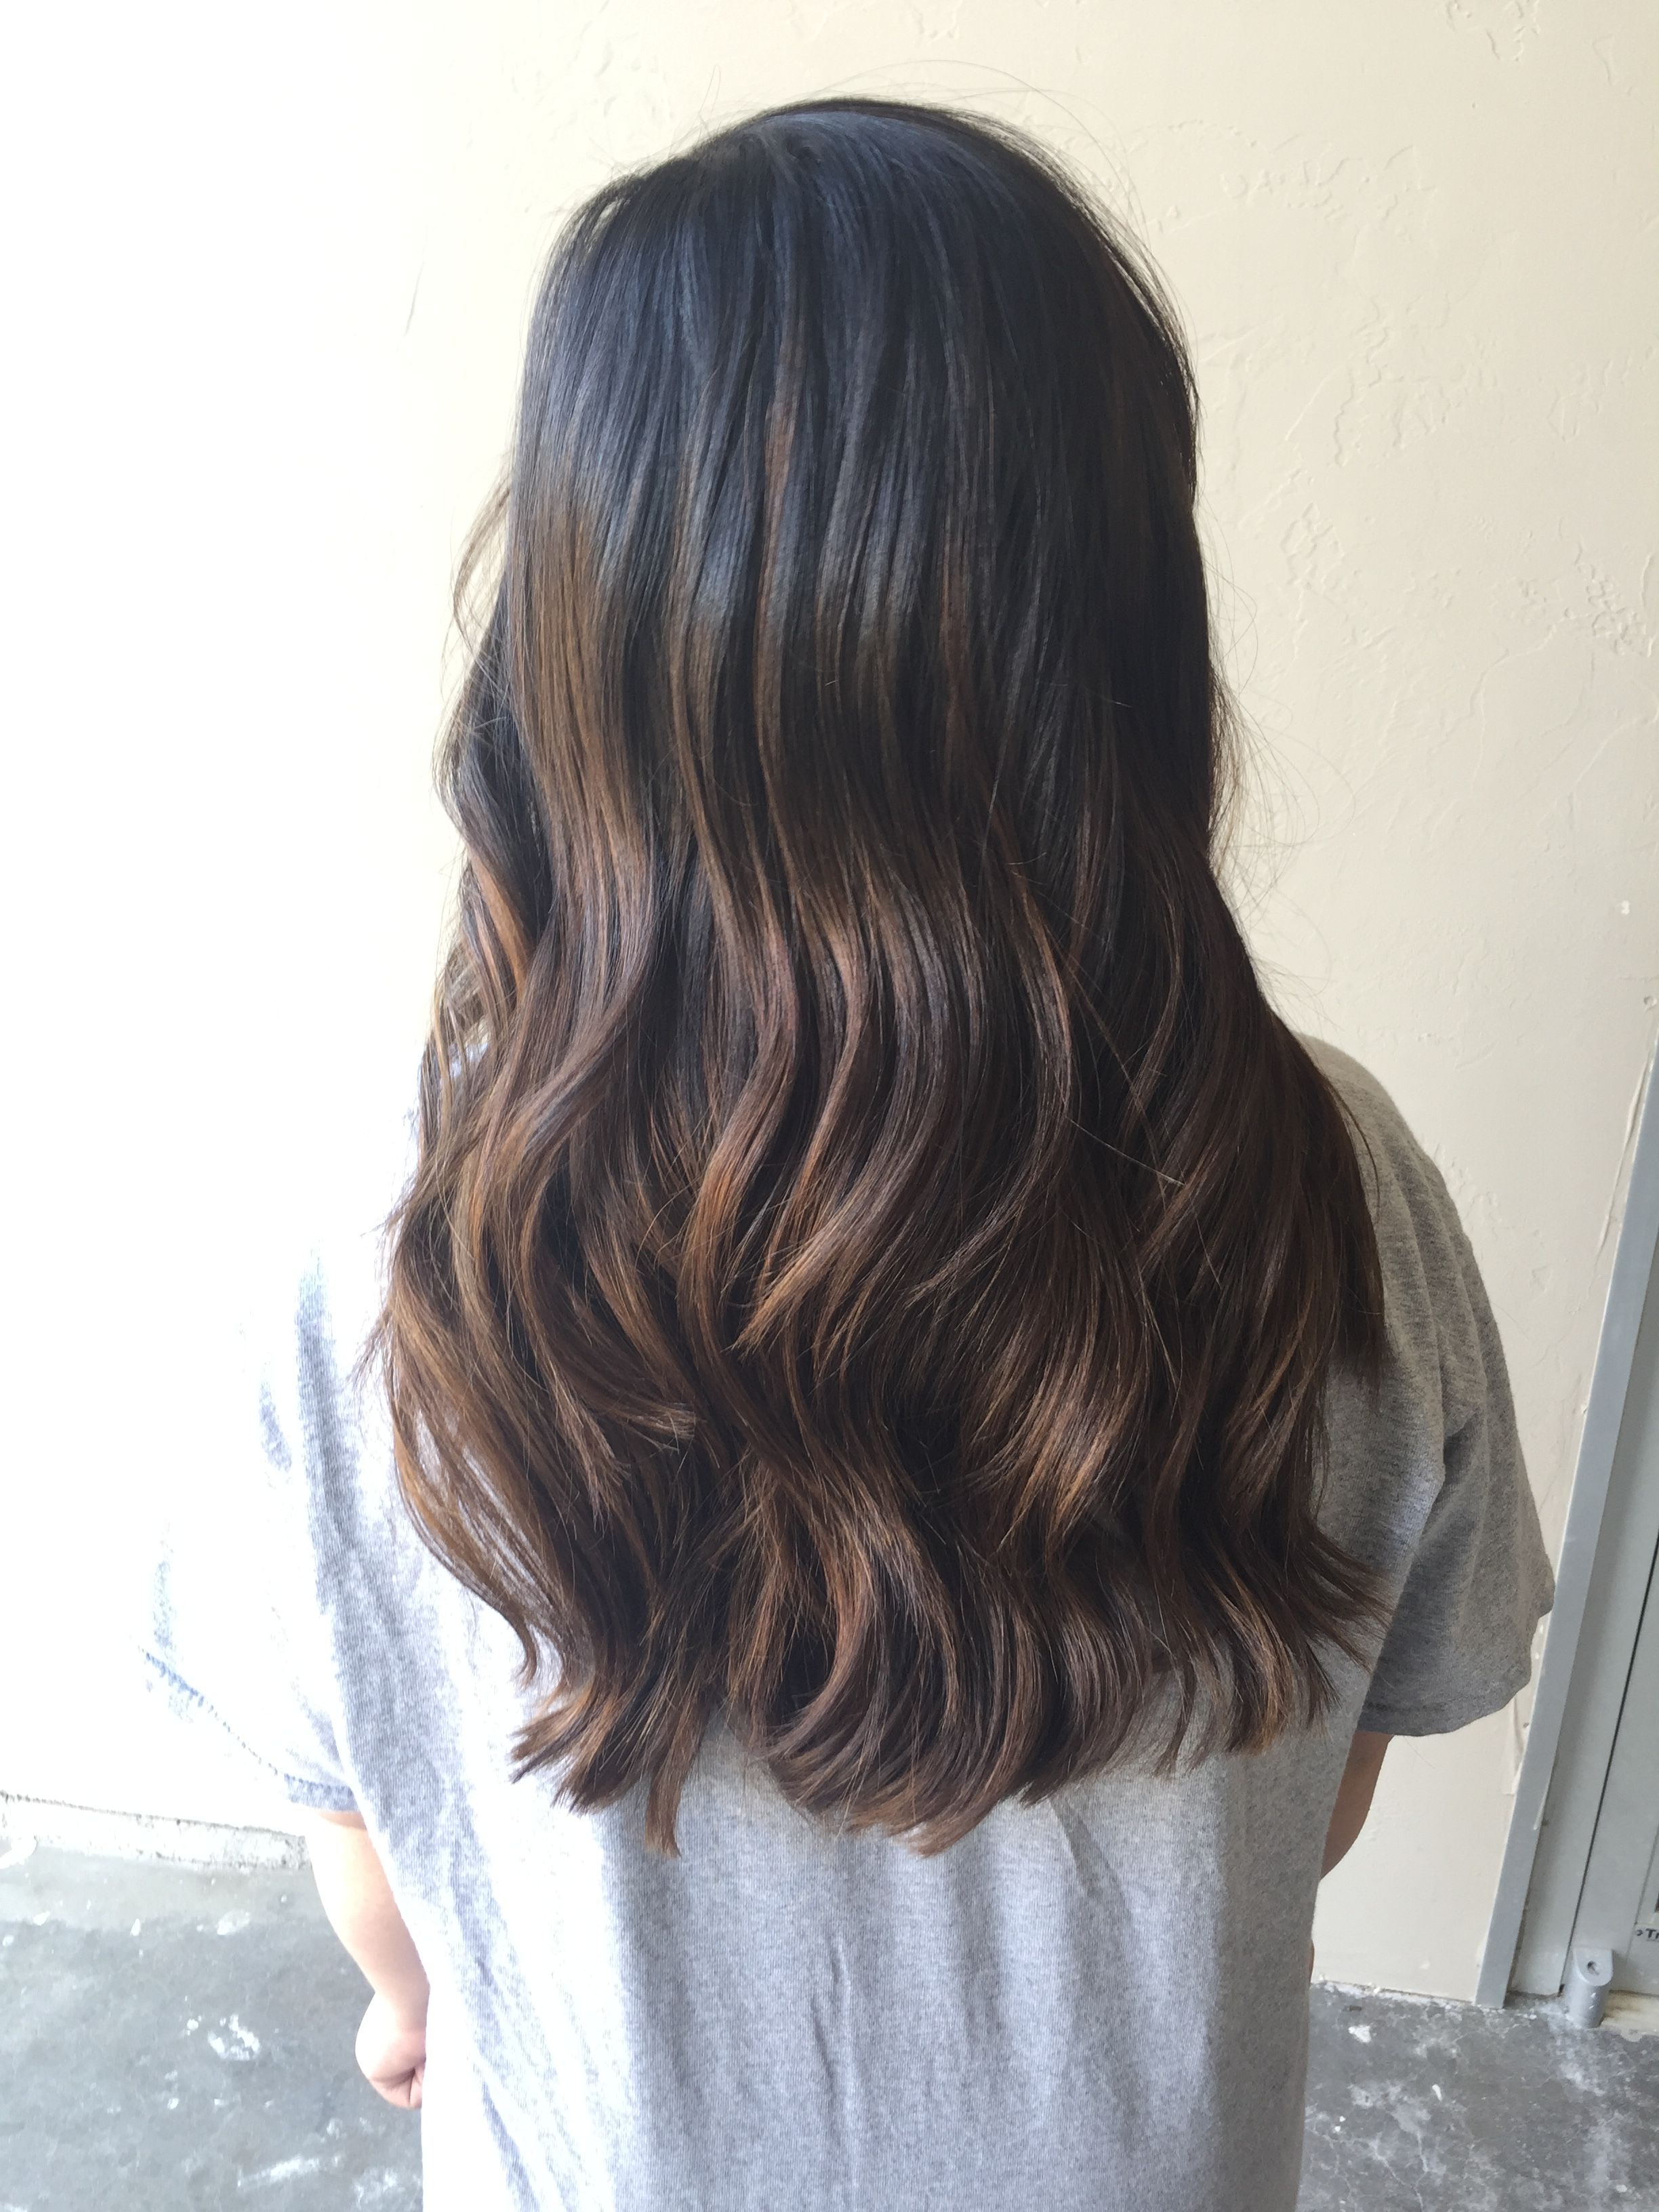 Dark Brown Neutral Balayage Hair By Jamie Thomas Scissortale Salon Goldwell Healthy Long Layers 7na Blondo Hair Styles Long Hair Styles Long Hair Color